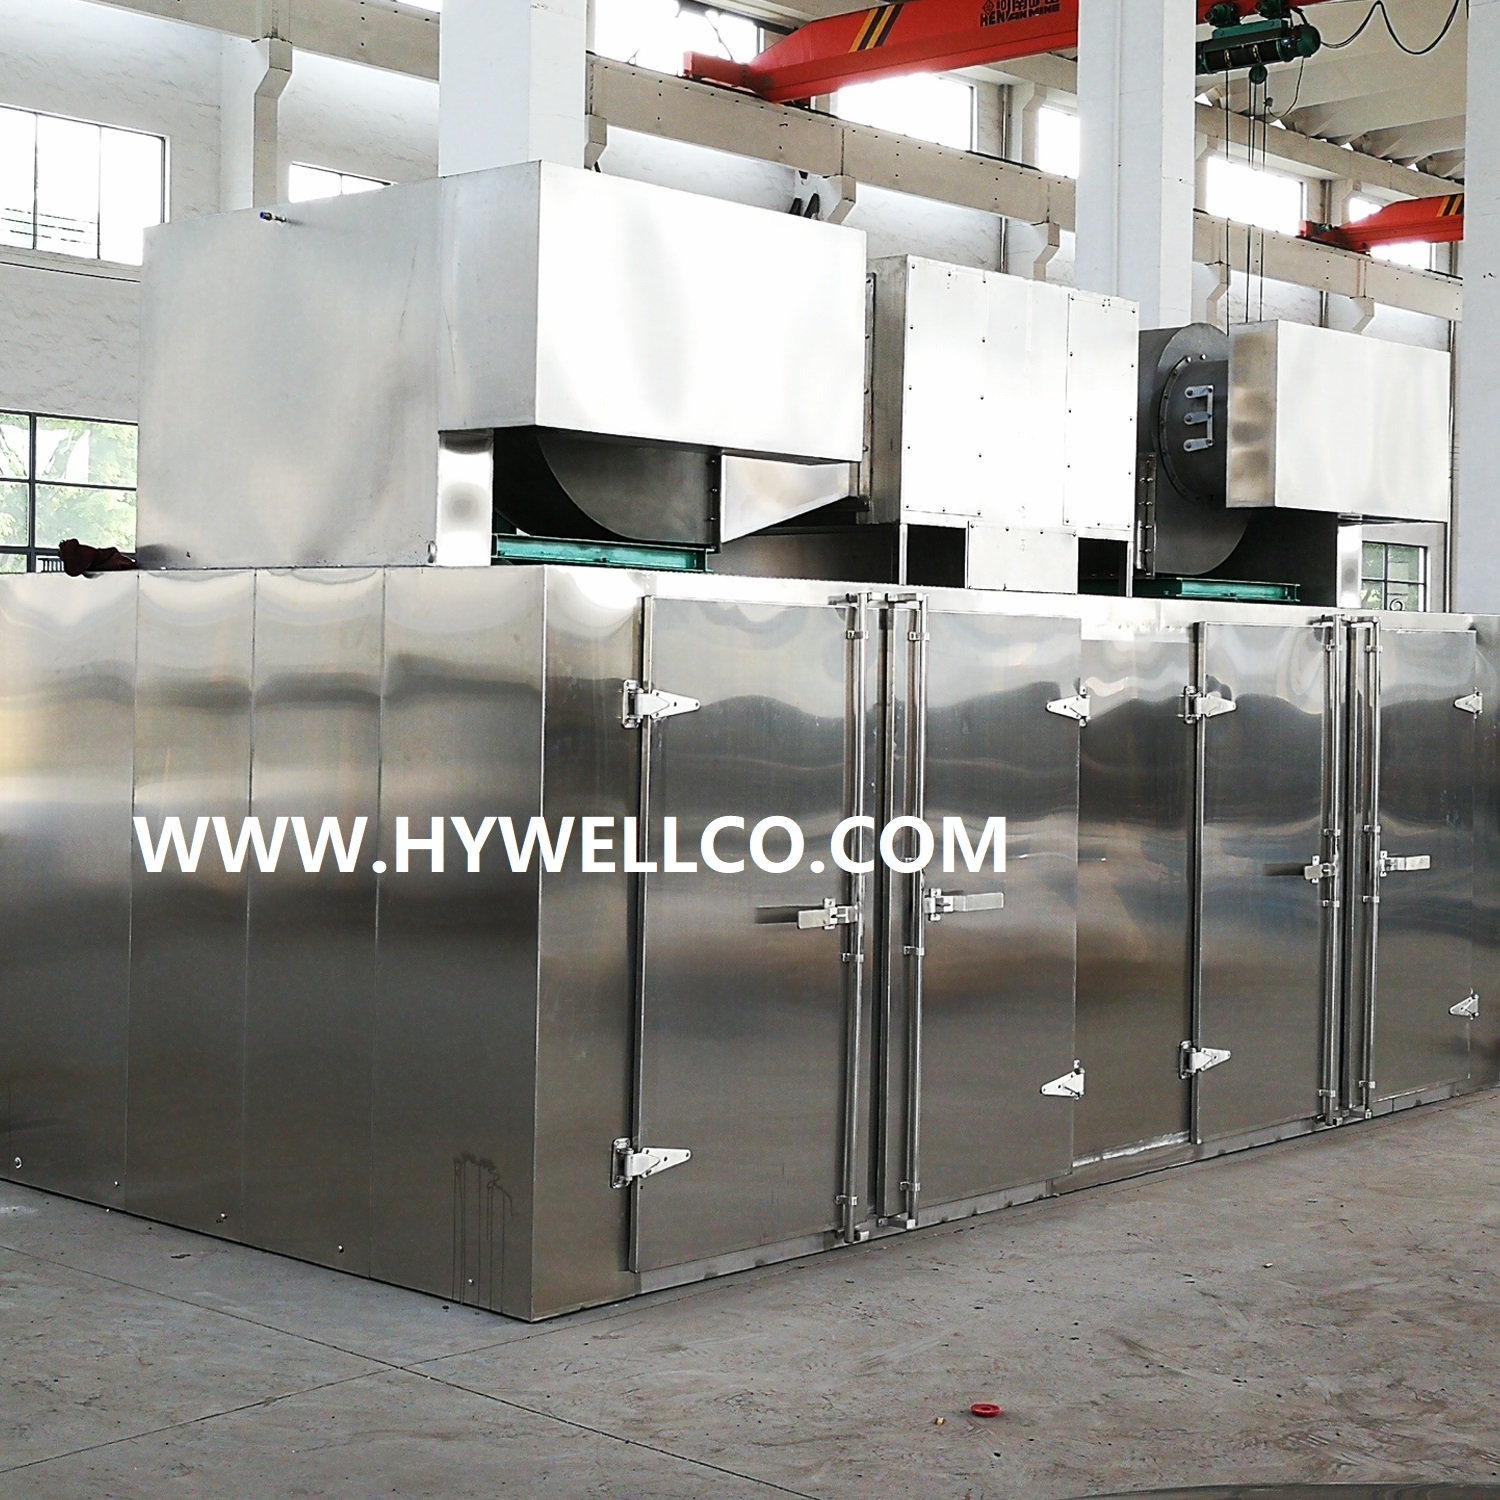 Tray model hot air oven